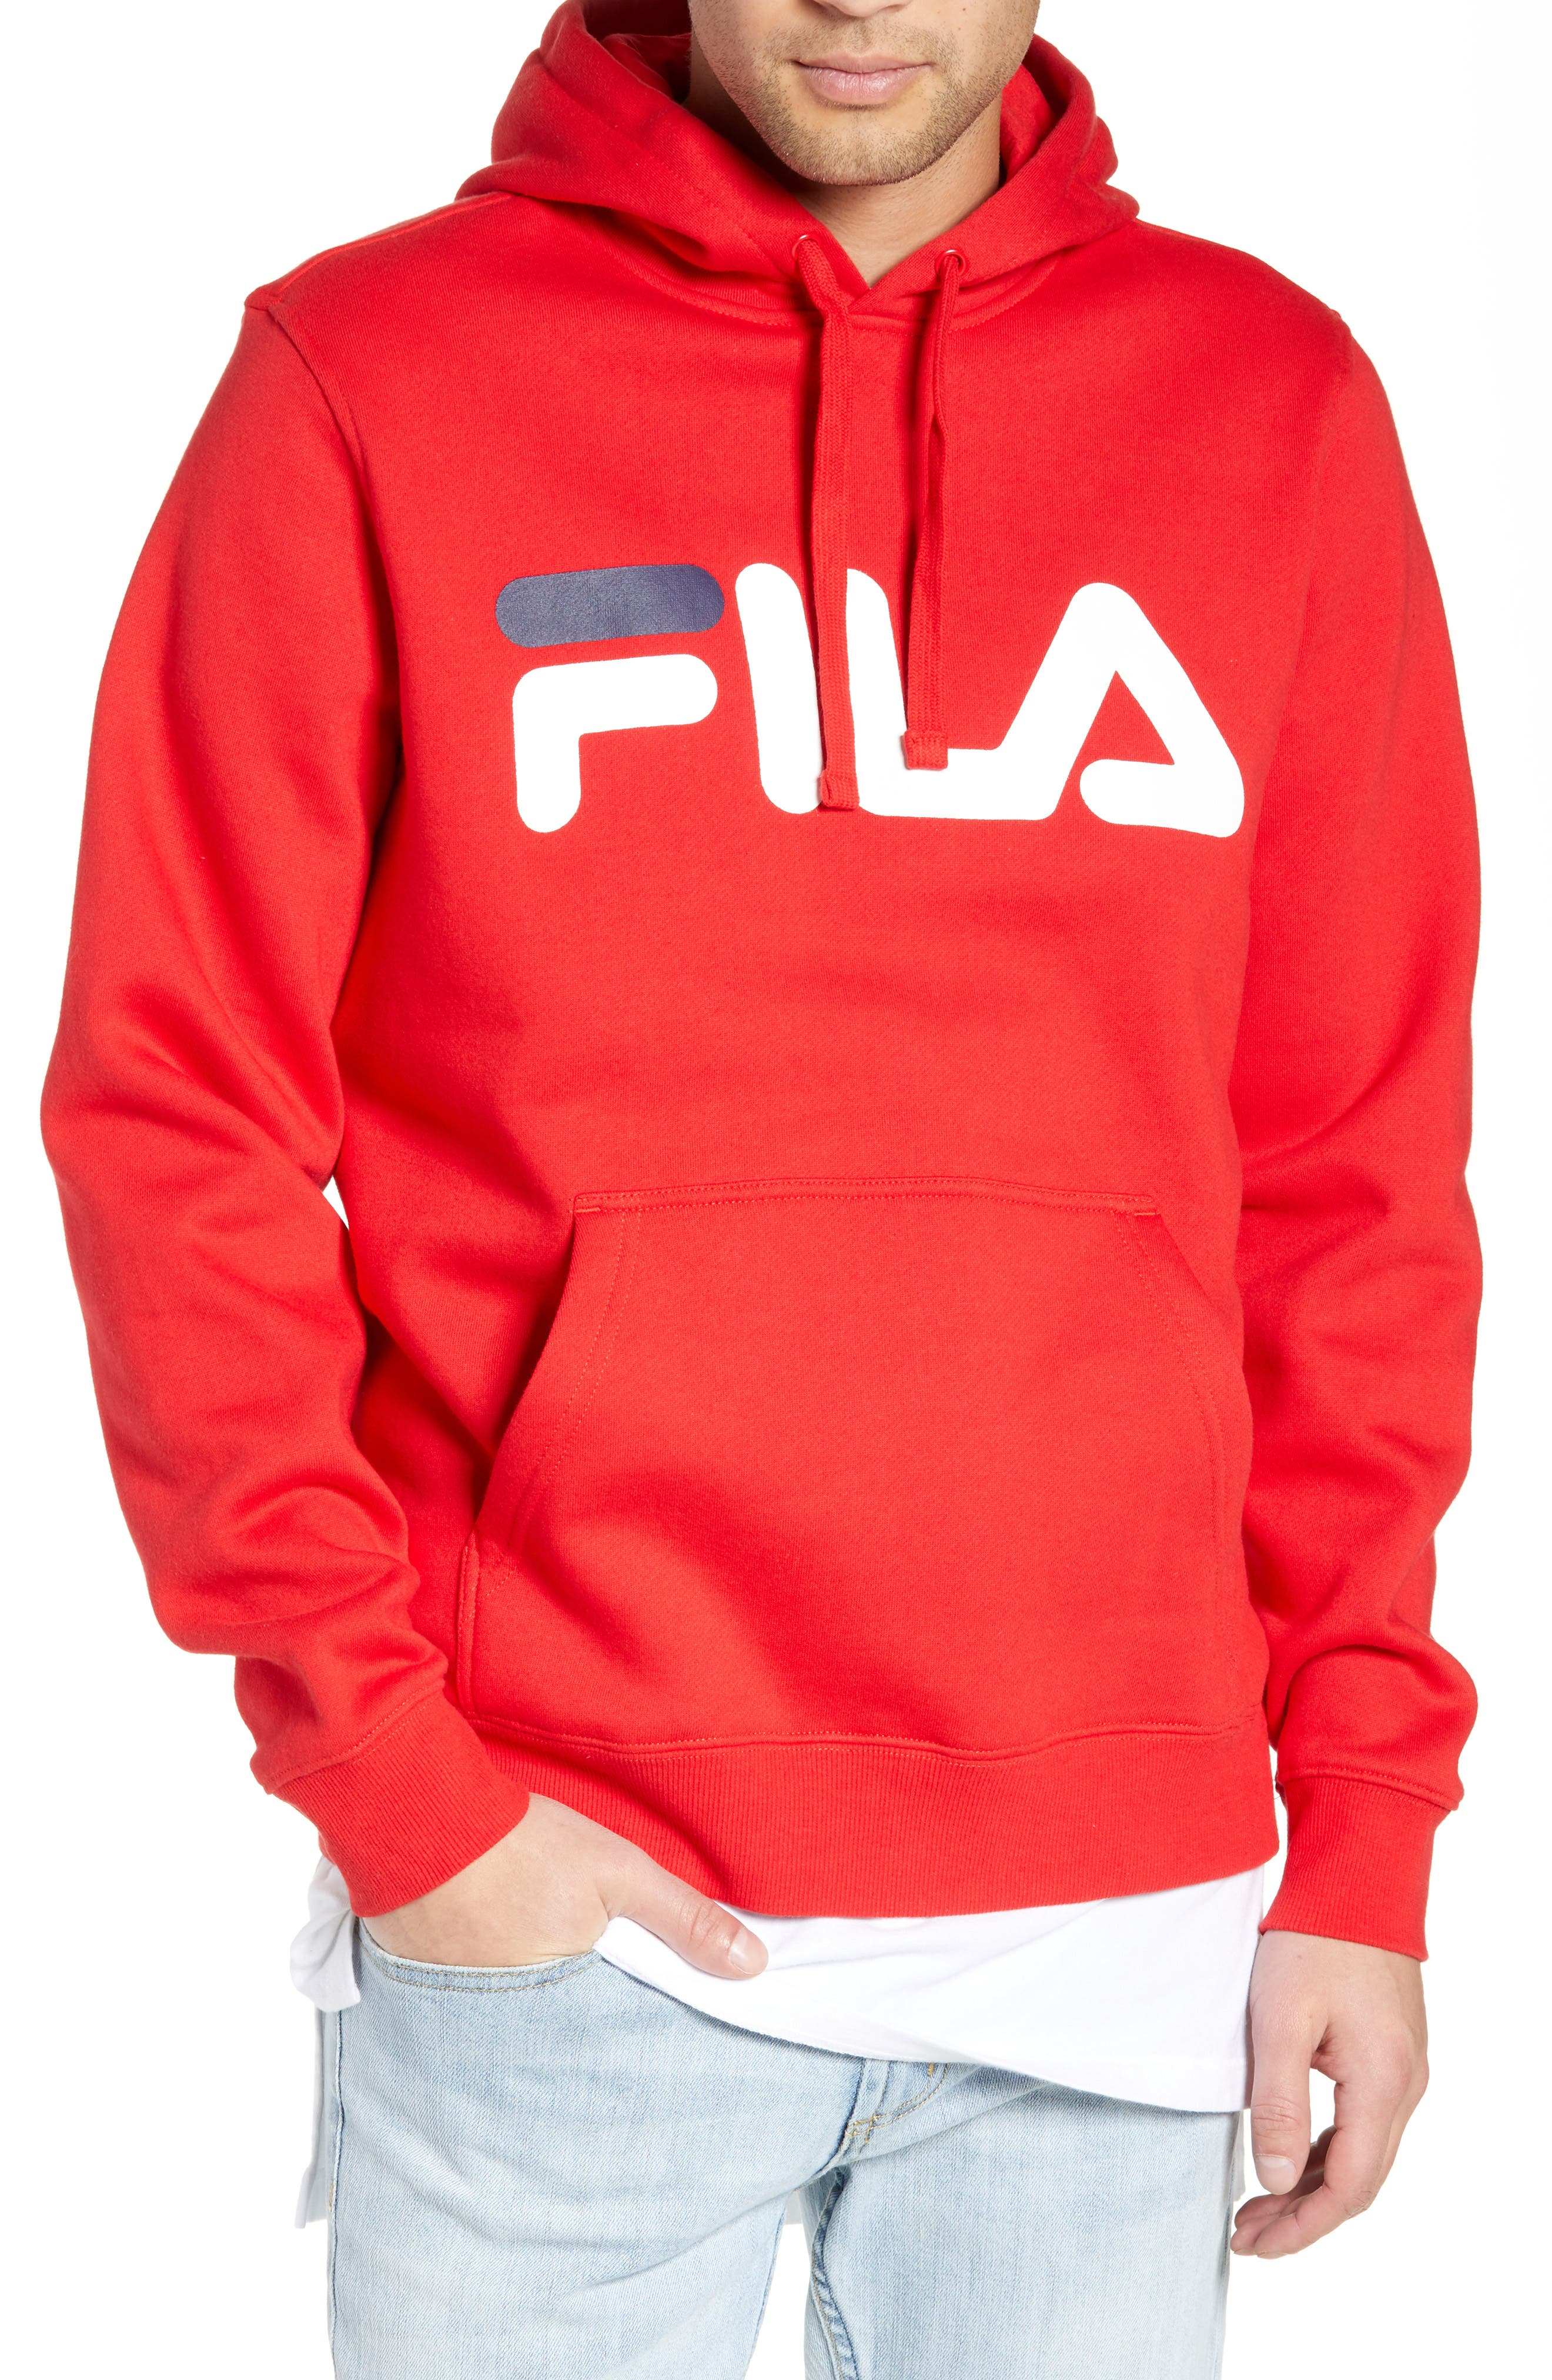 FILA, Logo Graphic Hooded Sweatshirt, Main thumbnail 1, color, CHINESE RED/ WHITE/ NAVY